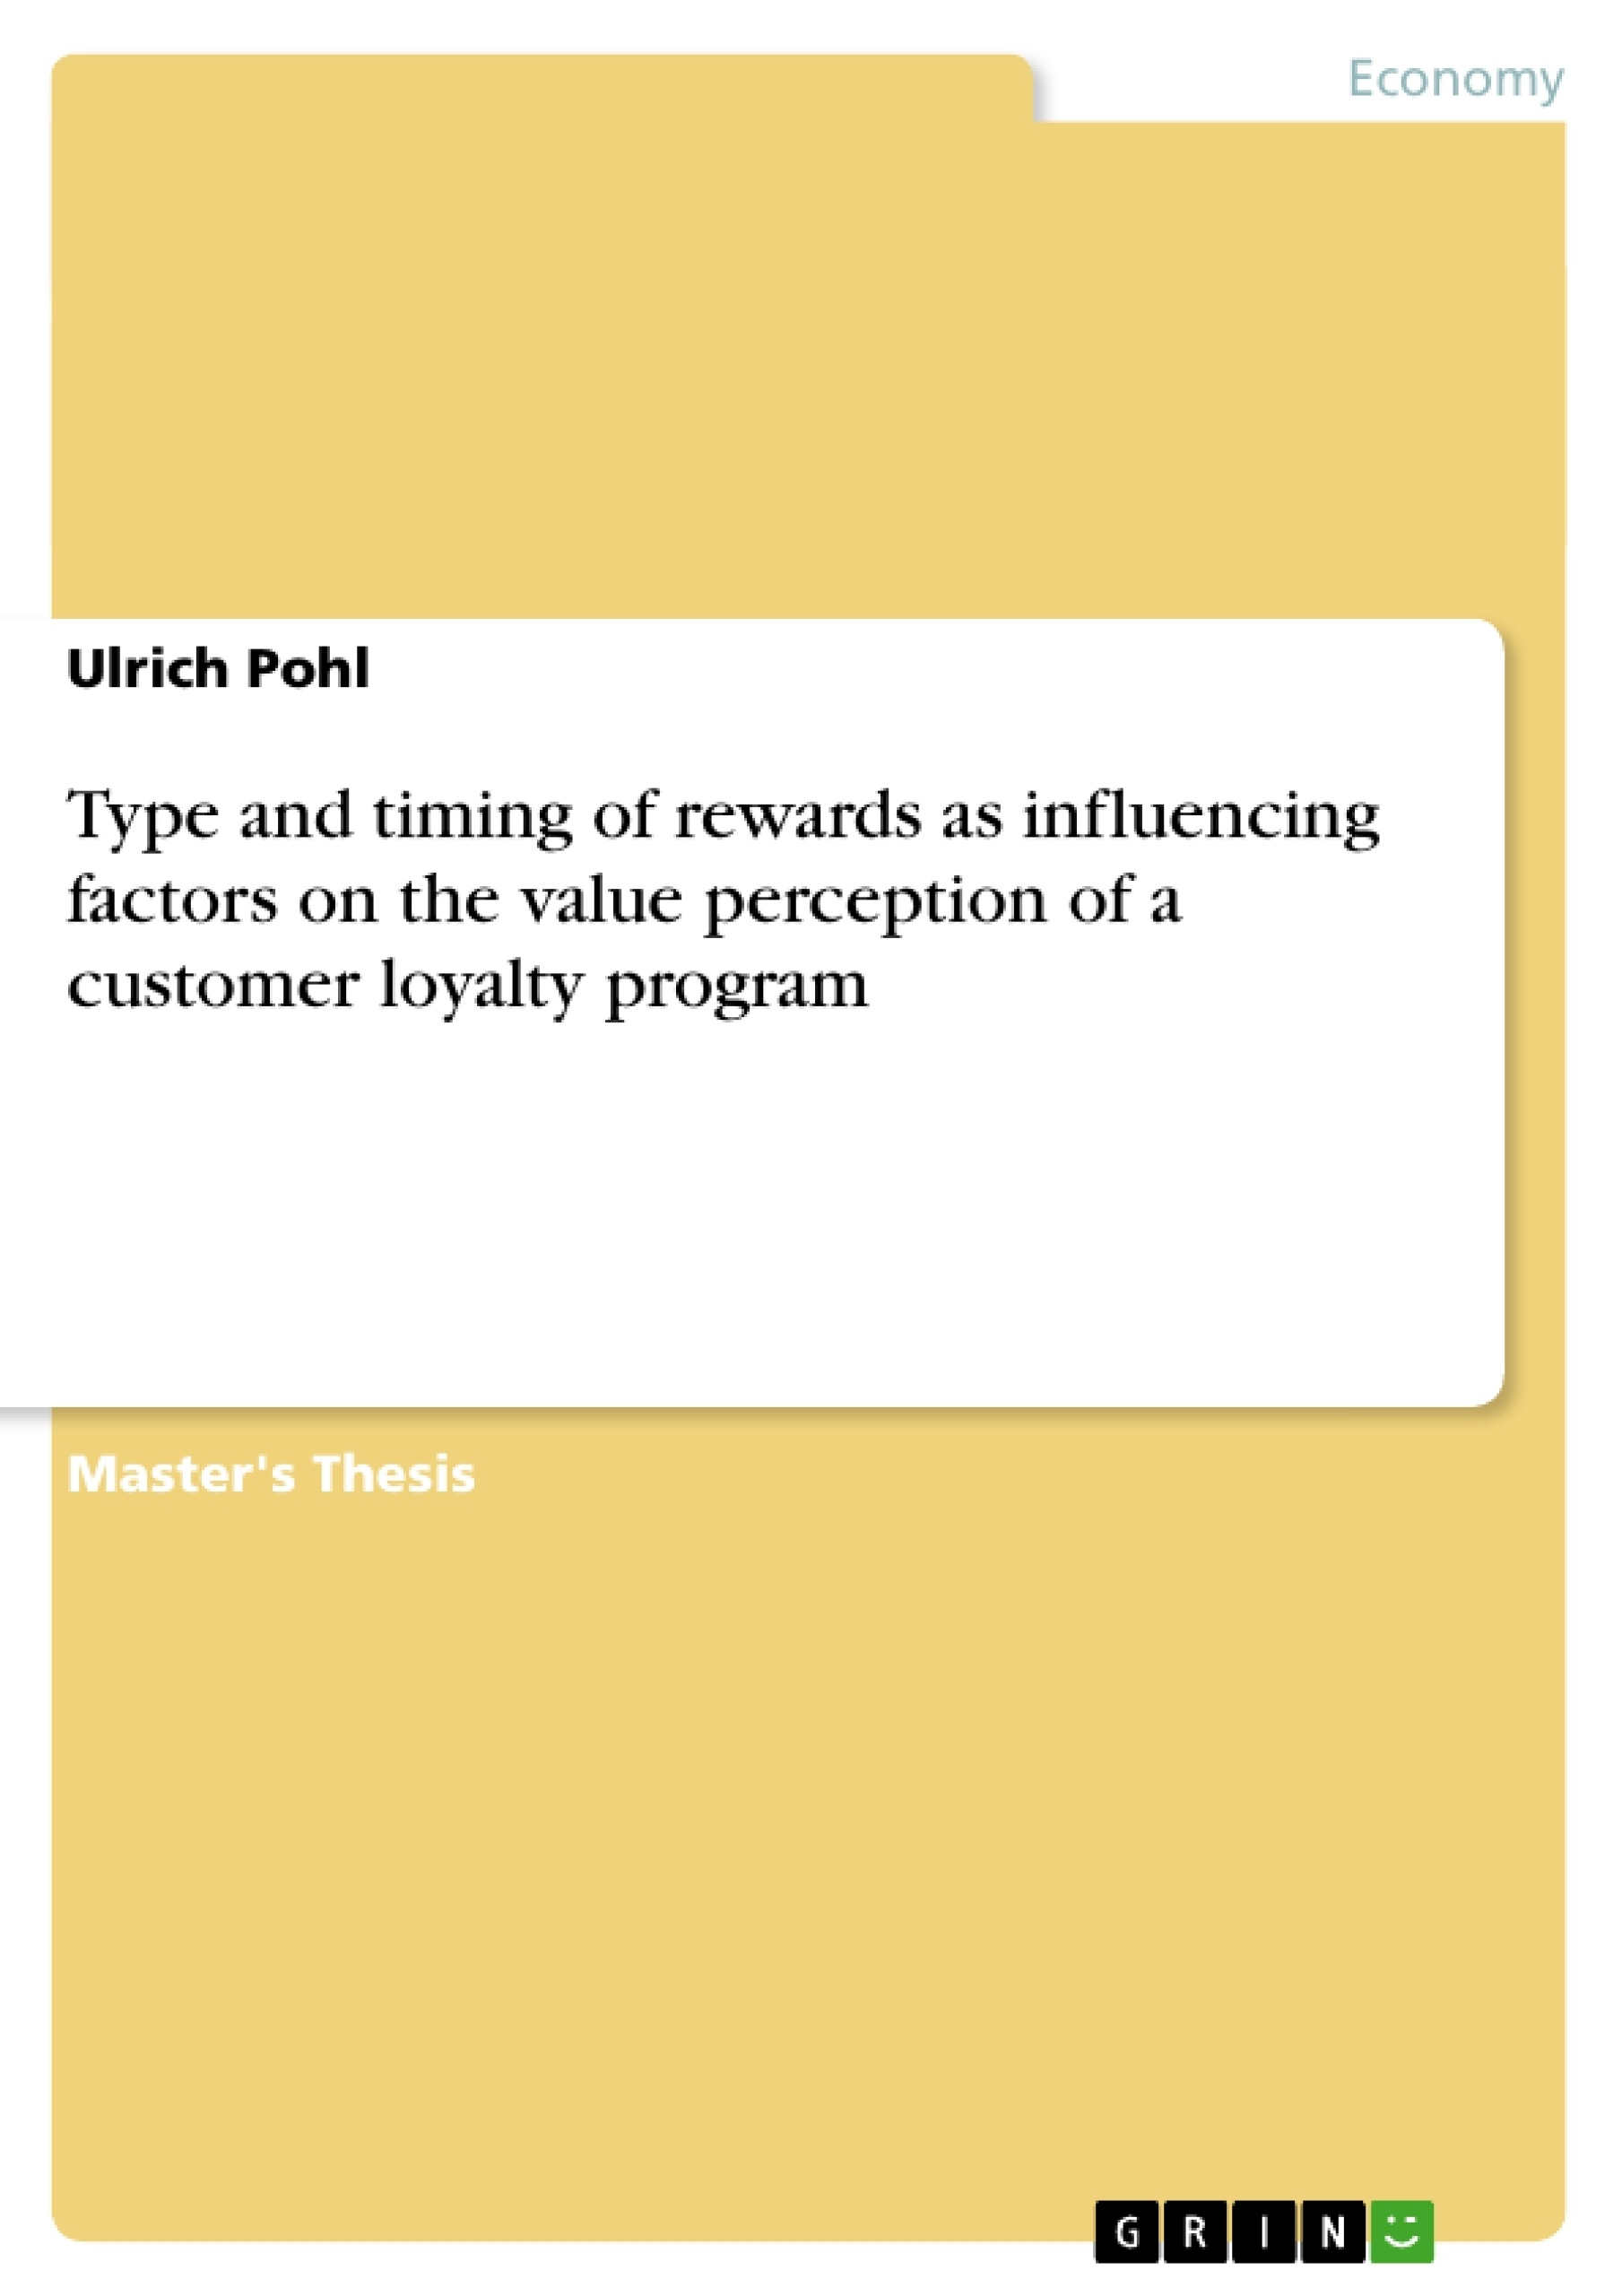 Title: Type and timing of rewards as influencing factors on the value perception of a customer loyalty program